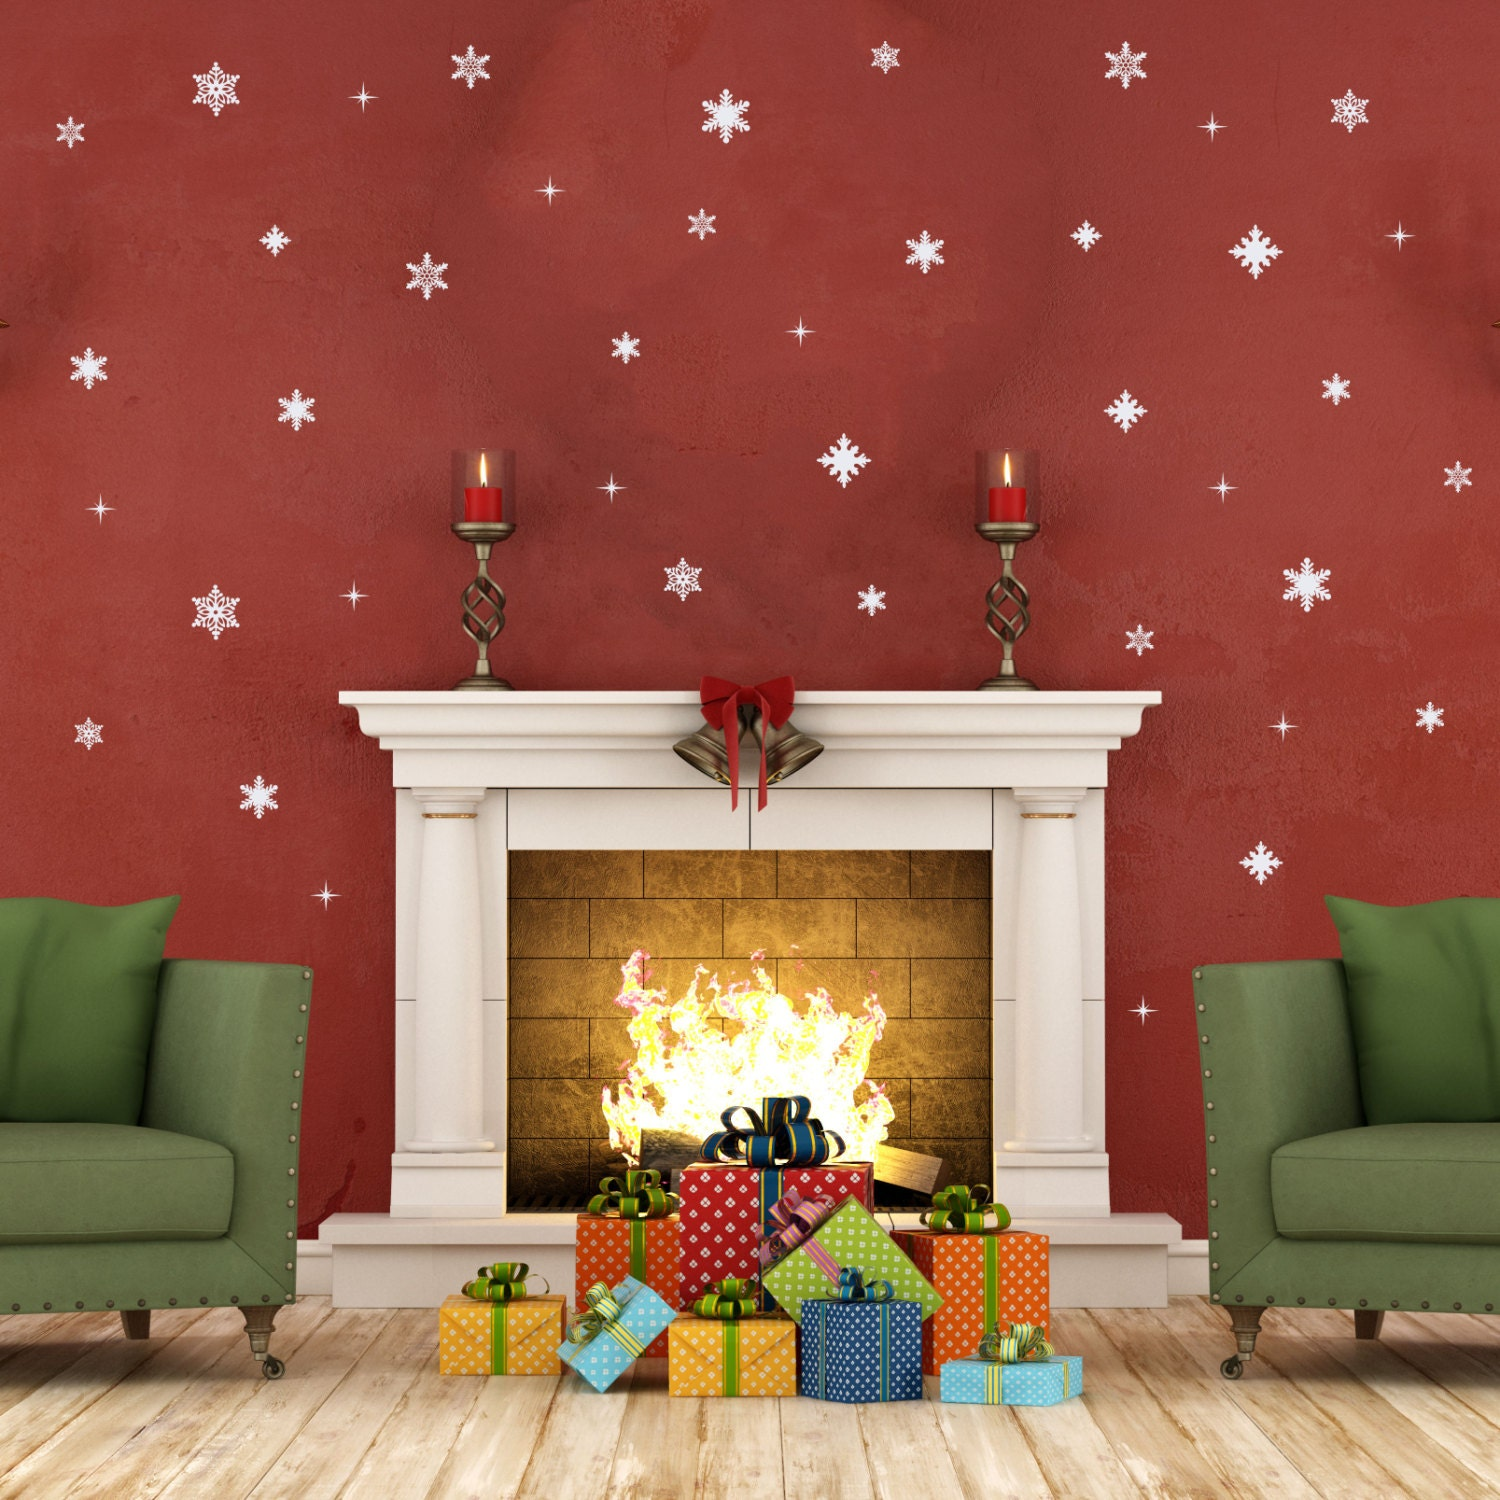 42 pc Snowflake Wall Decals Christmas Decals Christmas